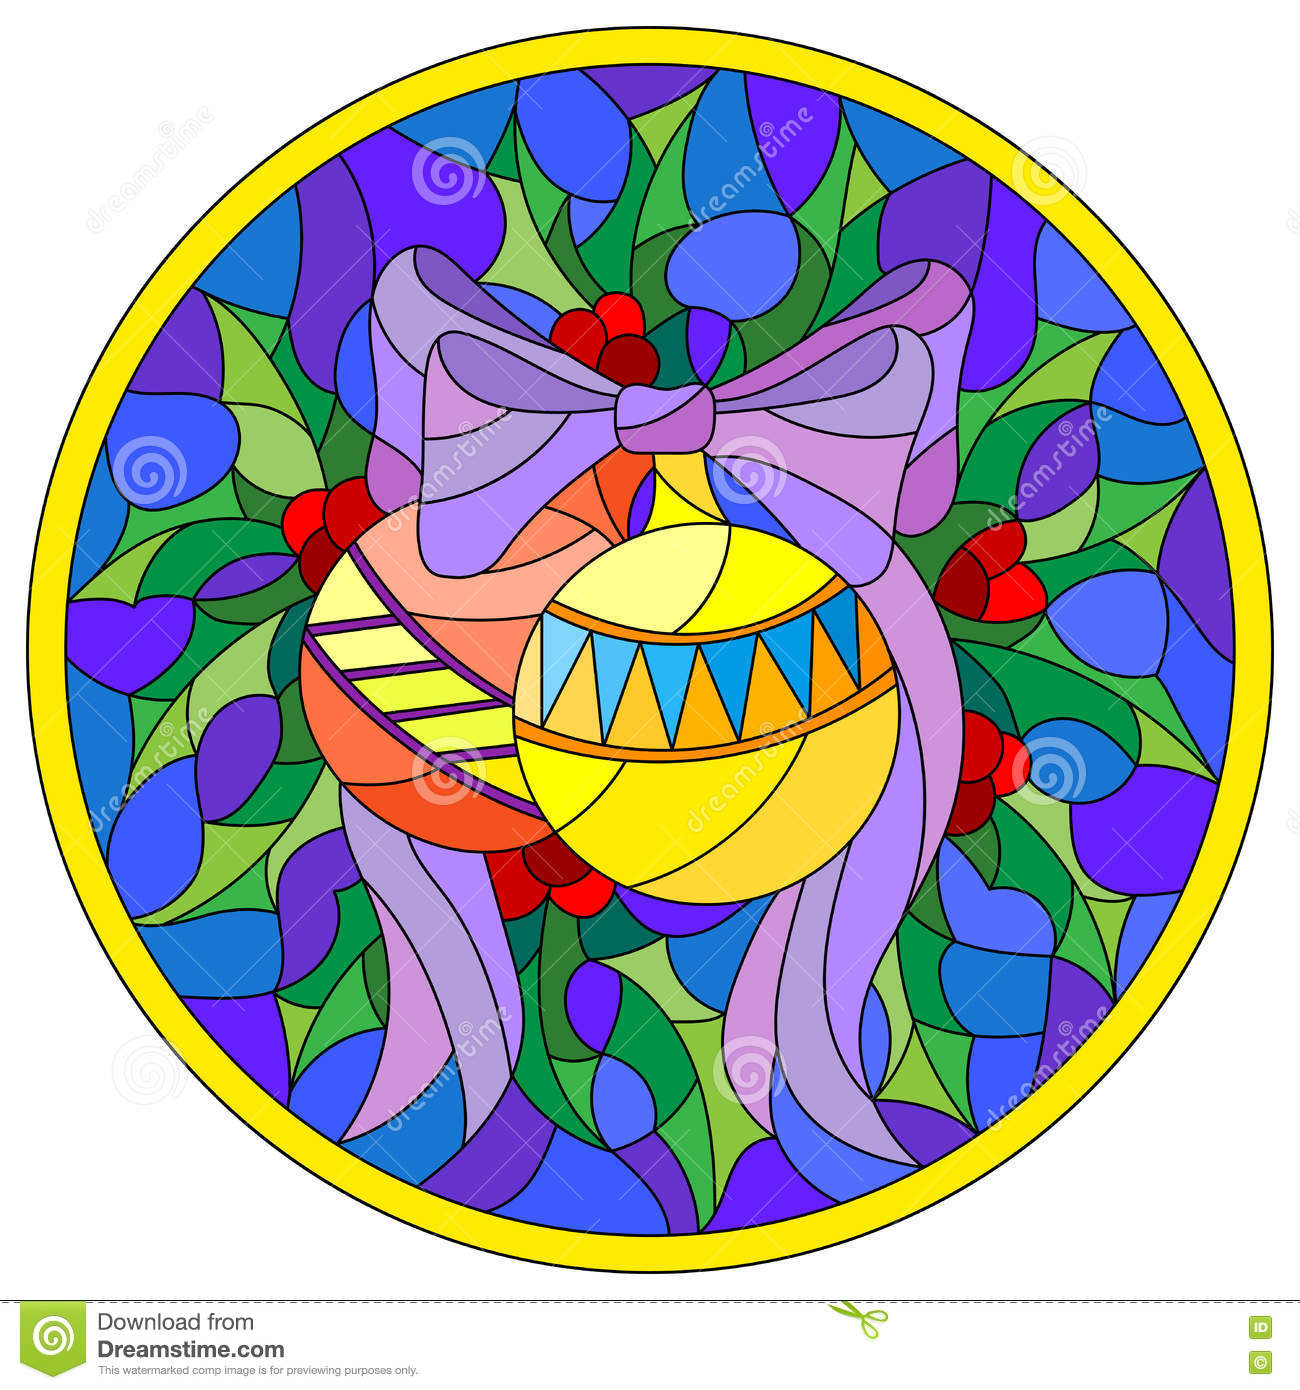 Stained Glass Illustration With Christmas Balls In The Shape Of A.